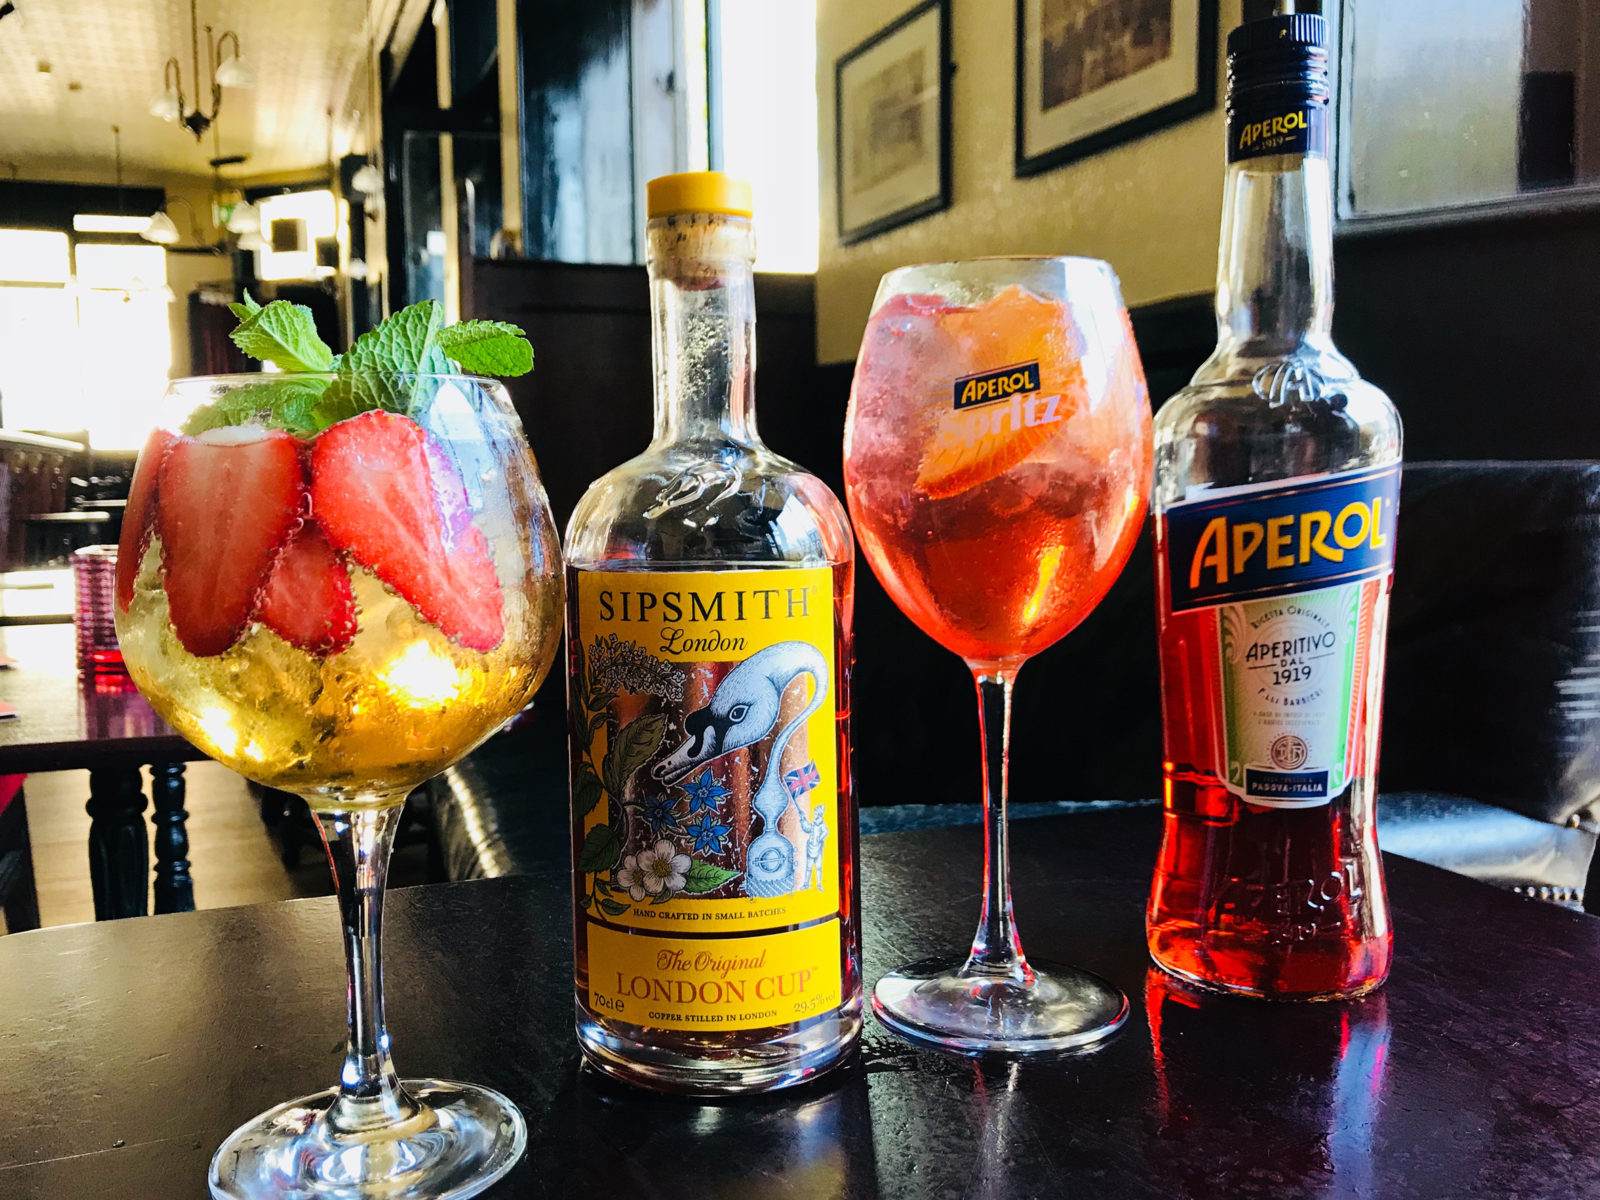 We know how to enjoy summer to the fullest. Ask us about our Gin of the week and cocktail recommendations